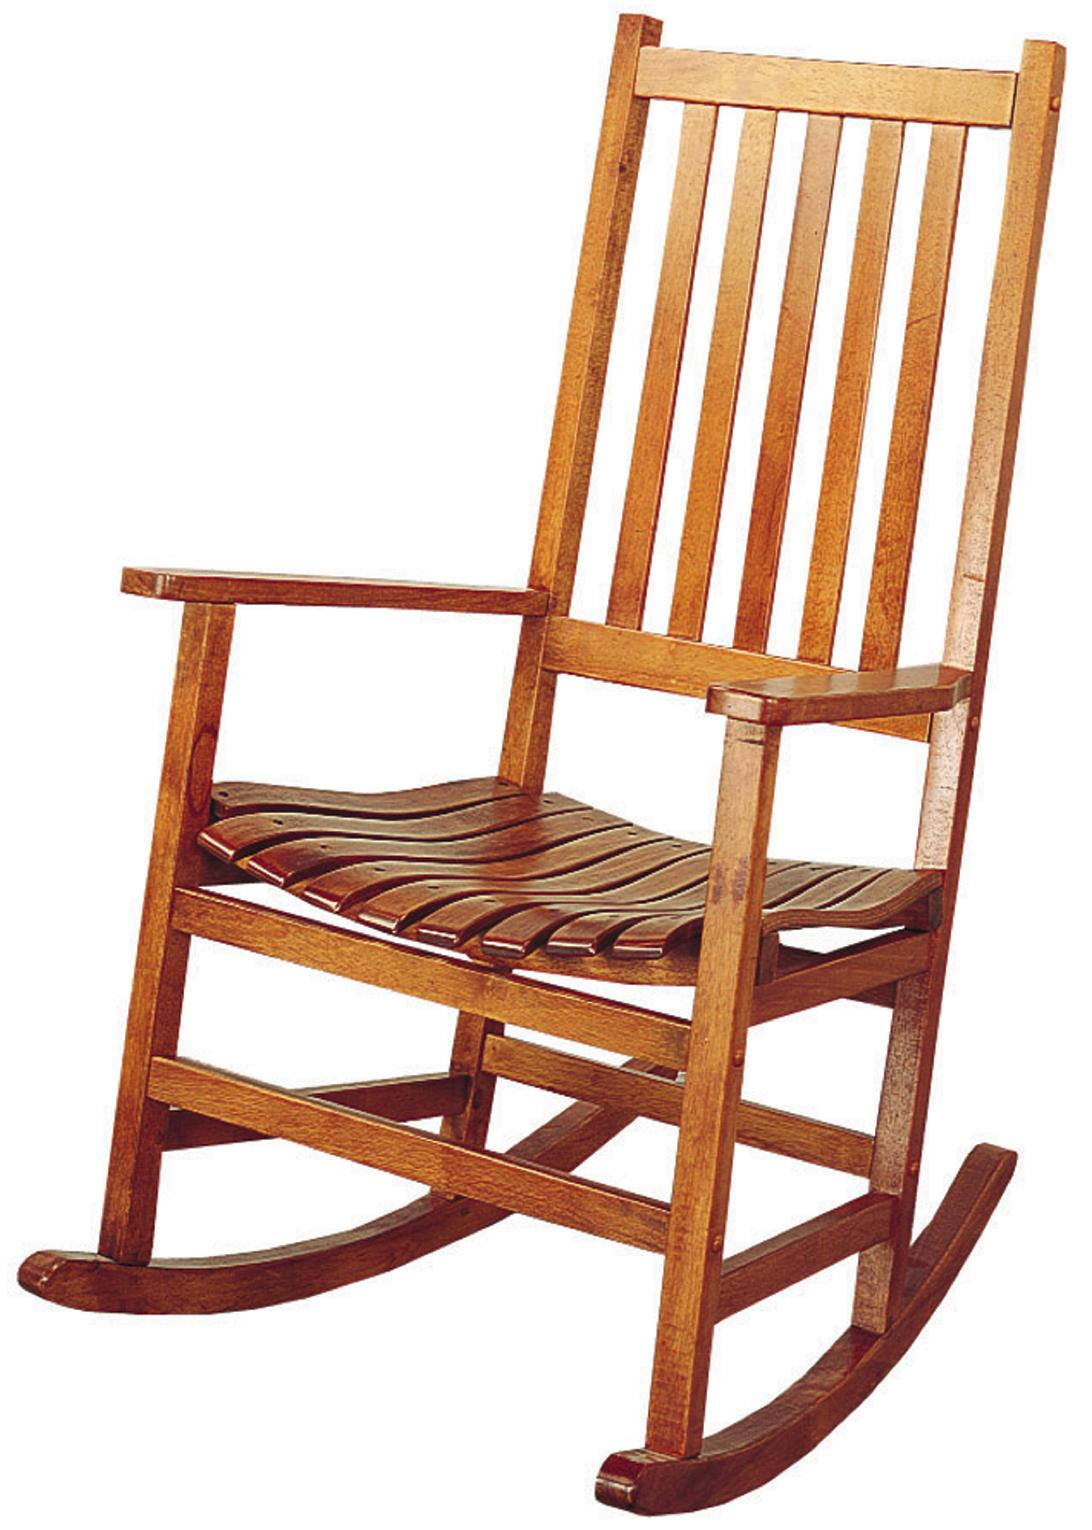 Free Rocking Chair Cliparts, Download Free Clip Art, Free.